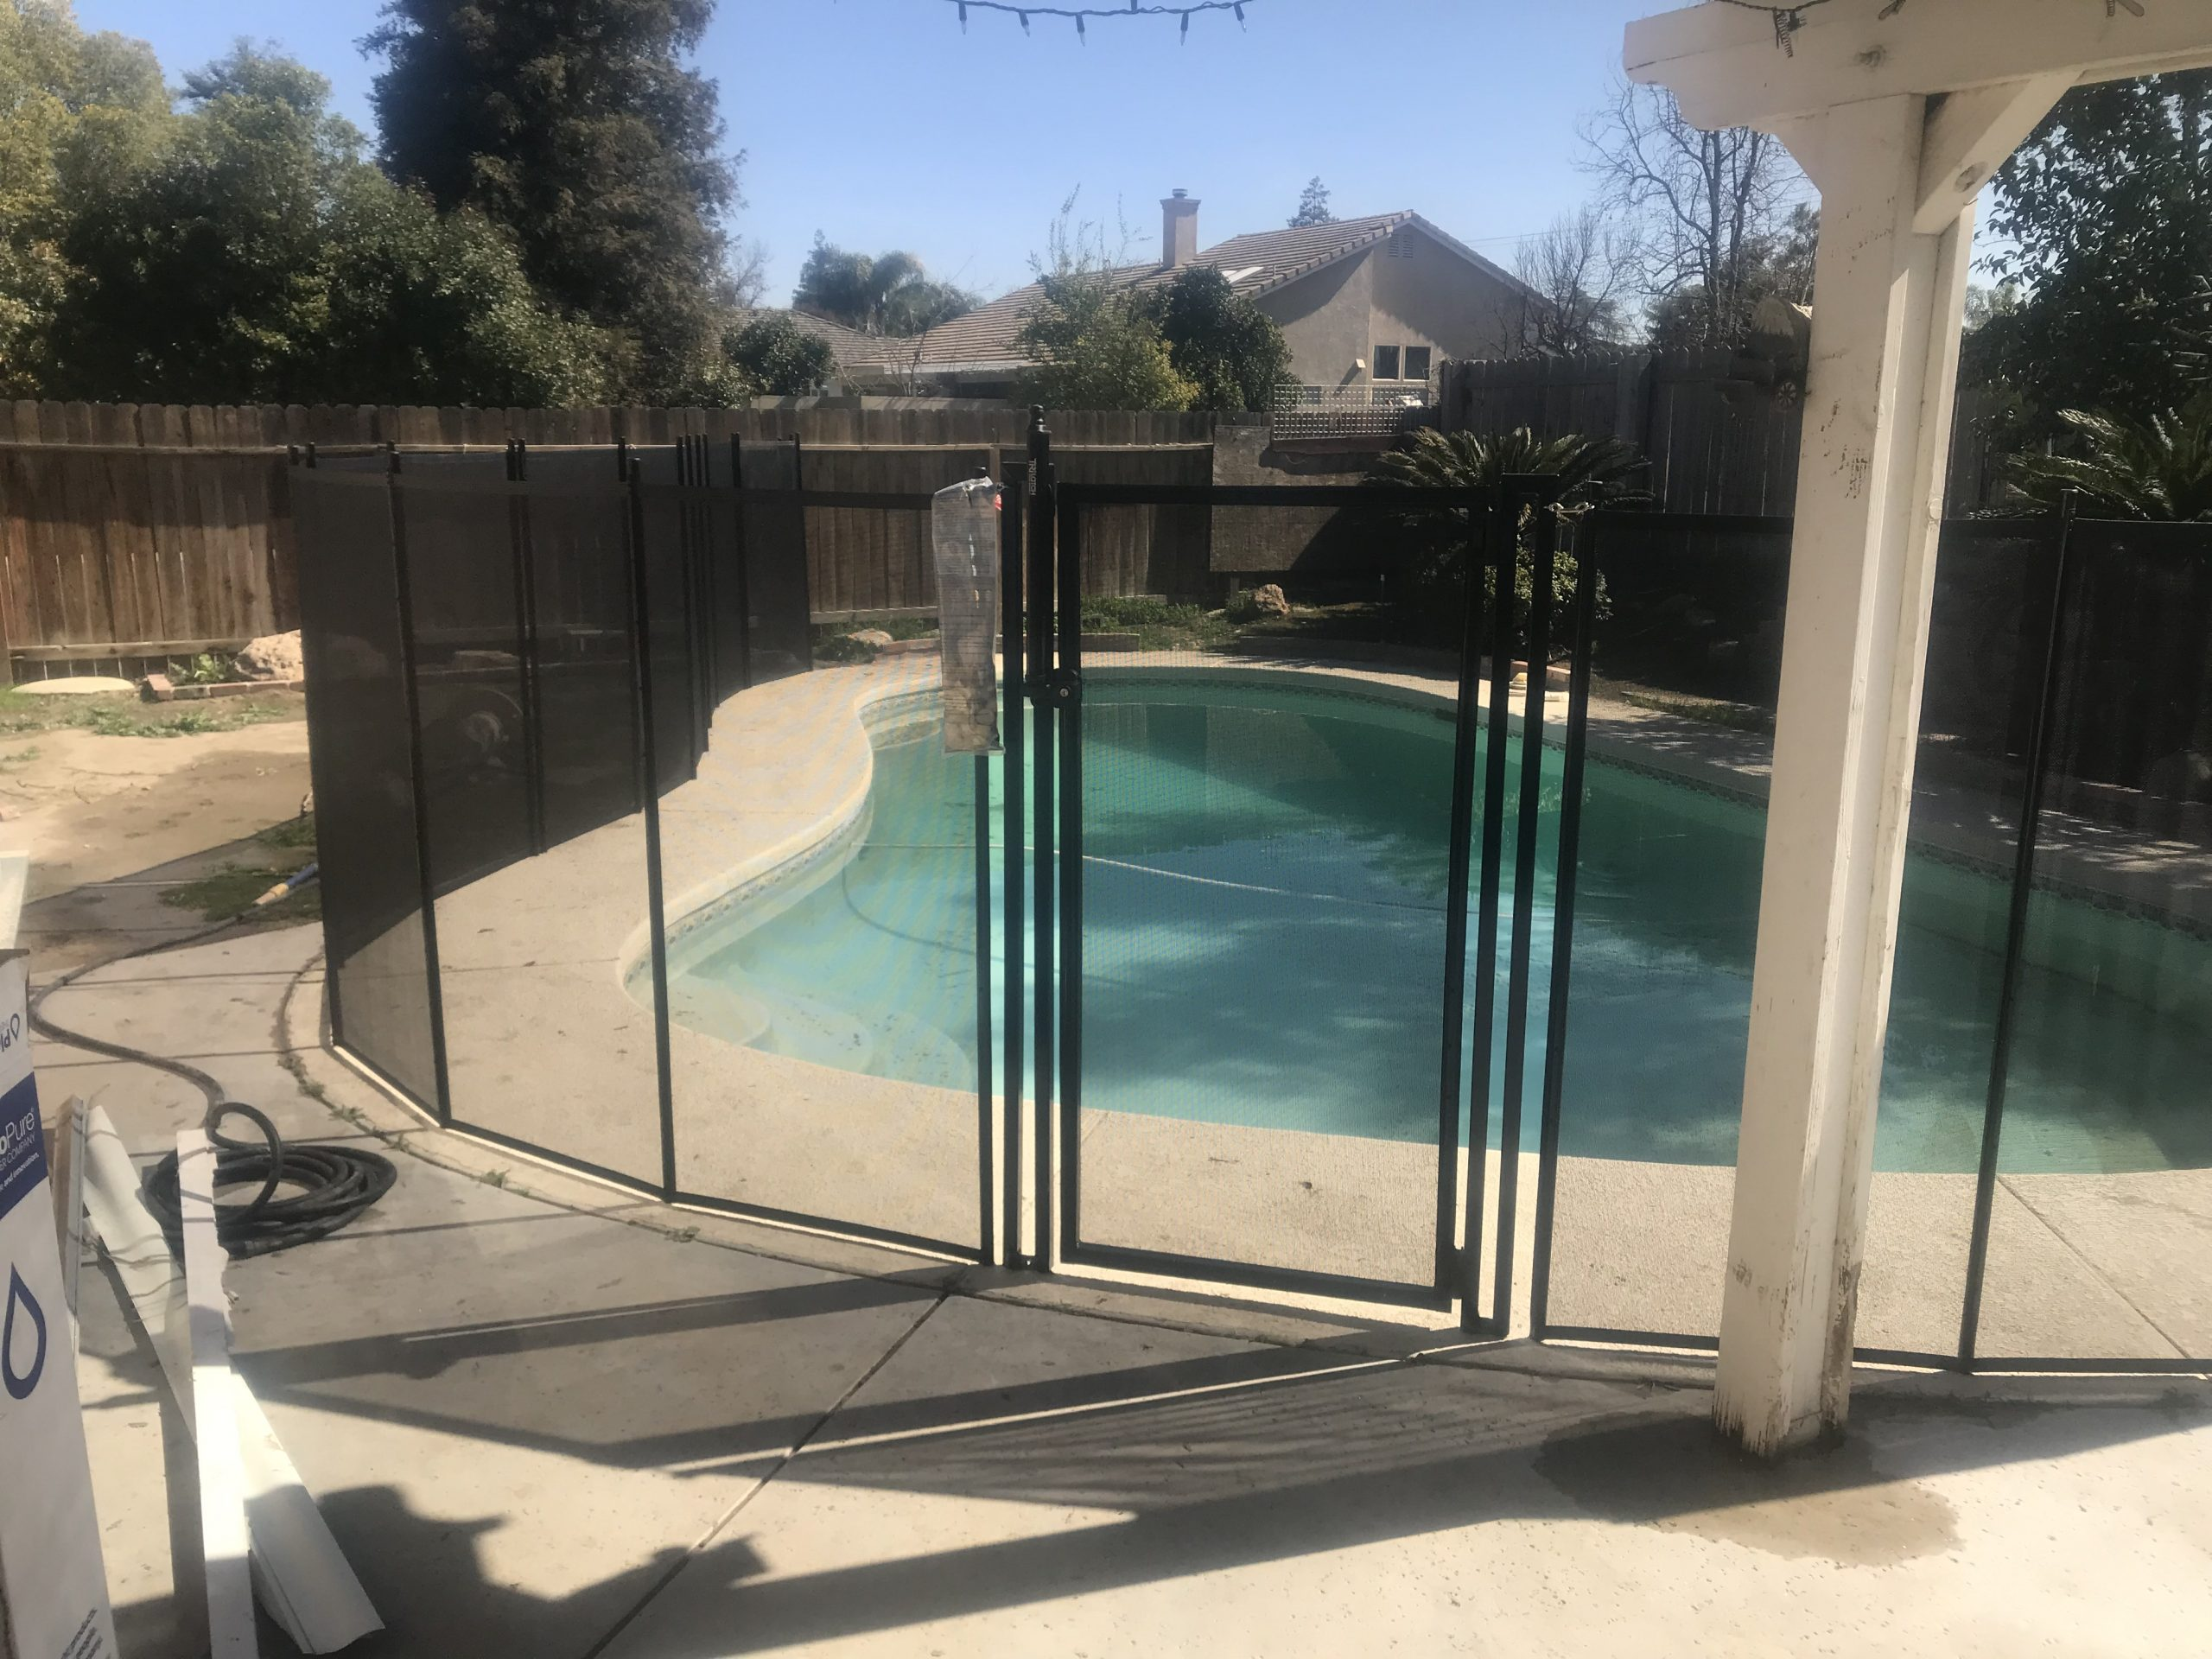 King's Pool Fencing installations in Simi Valley, CA